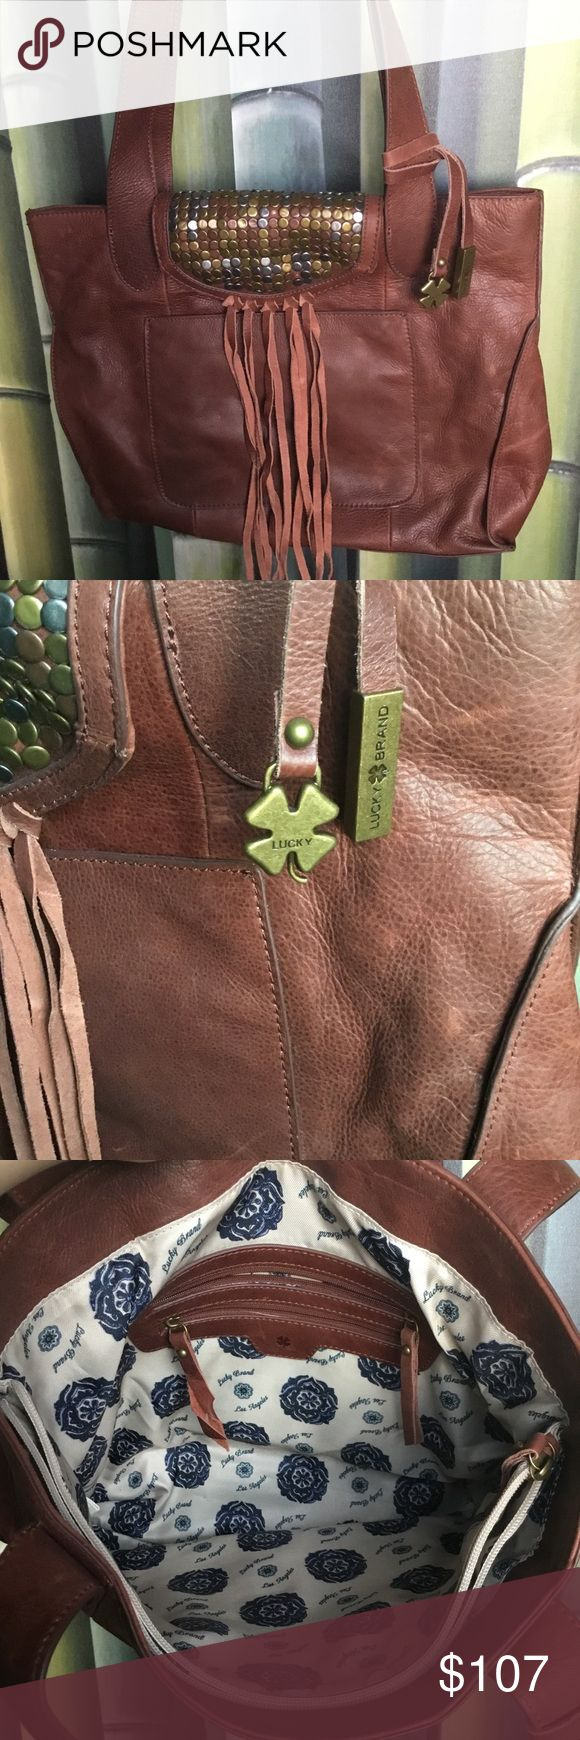 10% OFF 💜 Lucky brand purse Large purse to fit everything you need! Lucky Brand Bags Shoulder Bags